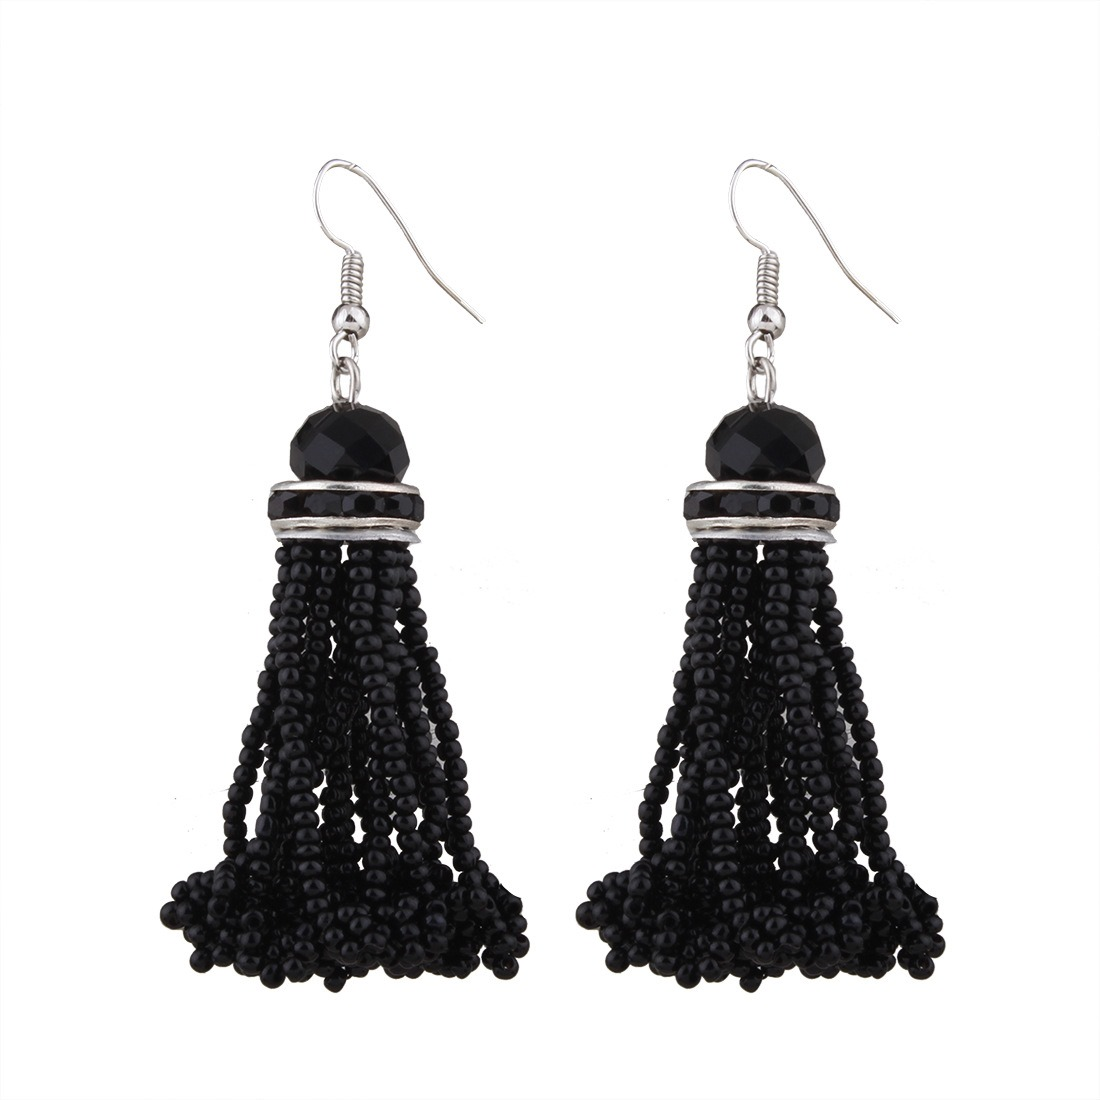 Ericdress Bohemia Bead Tassle Drop Earring for Women